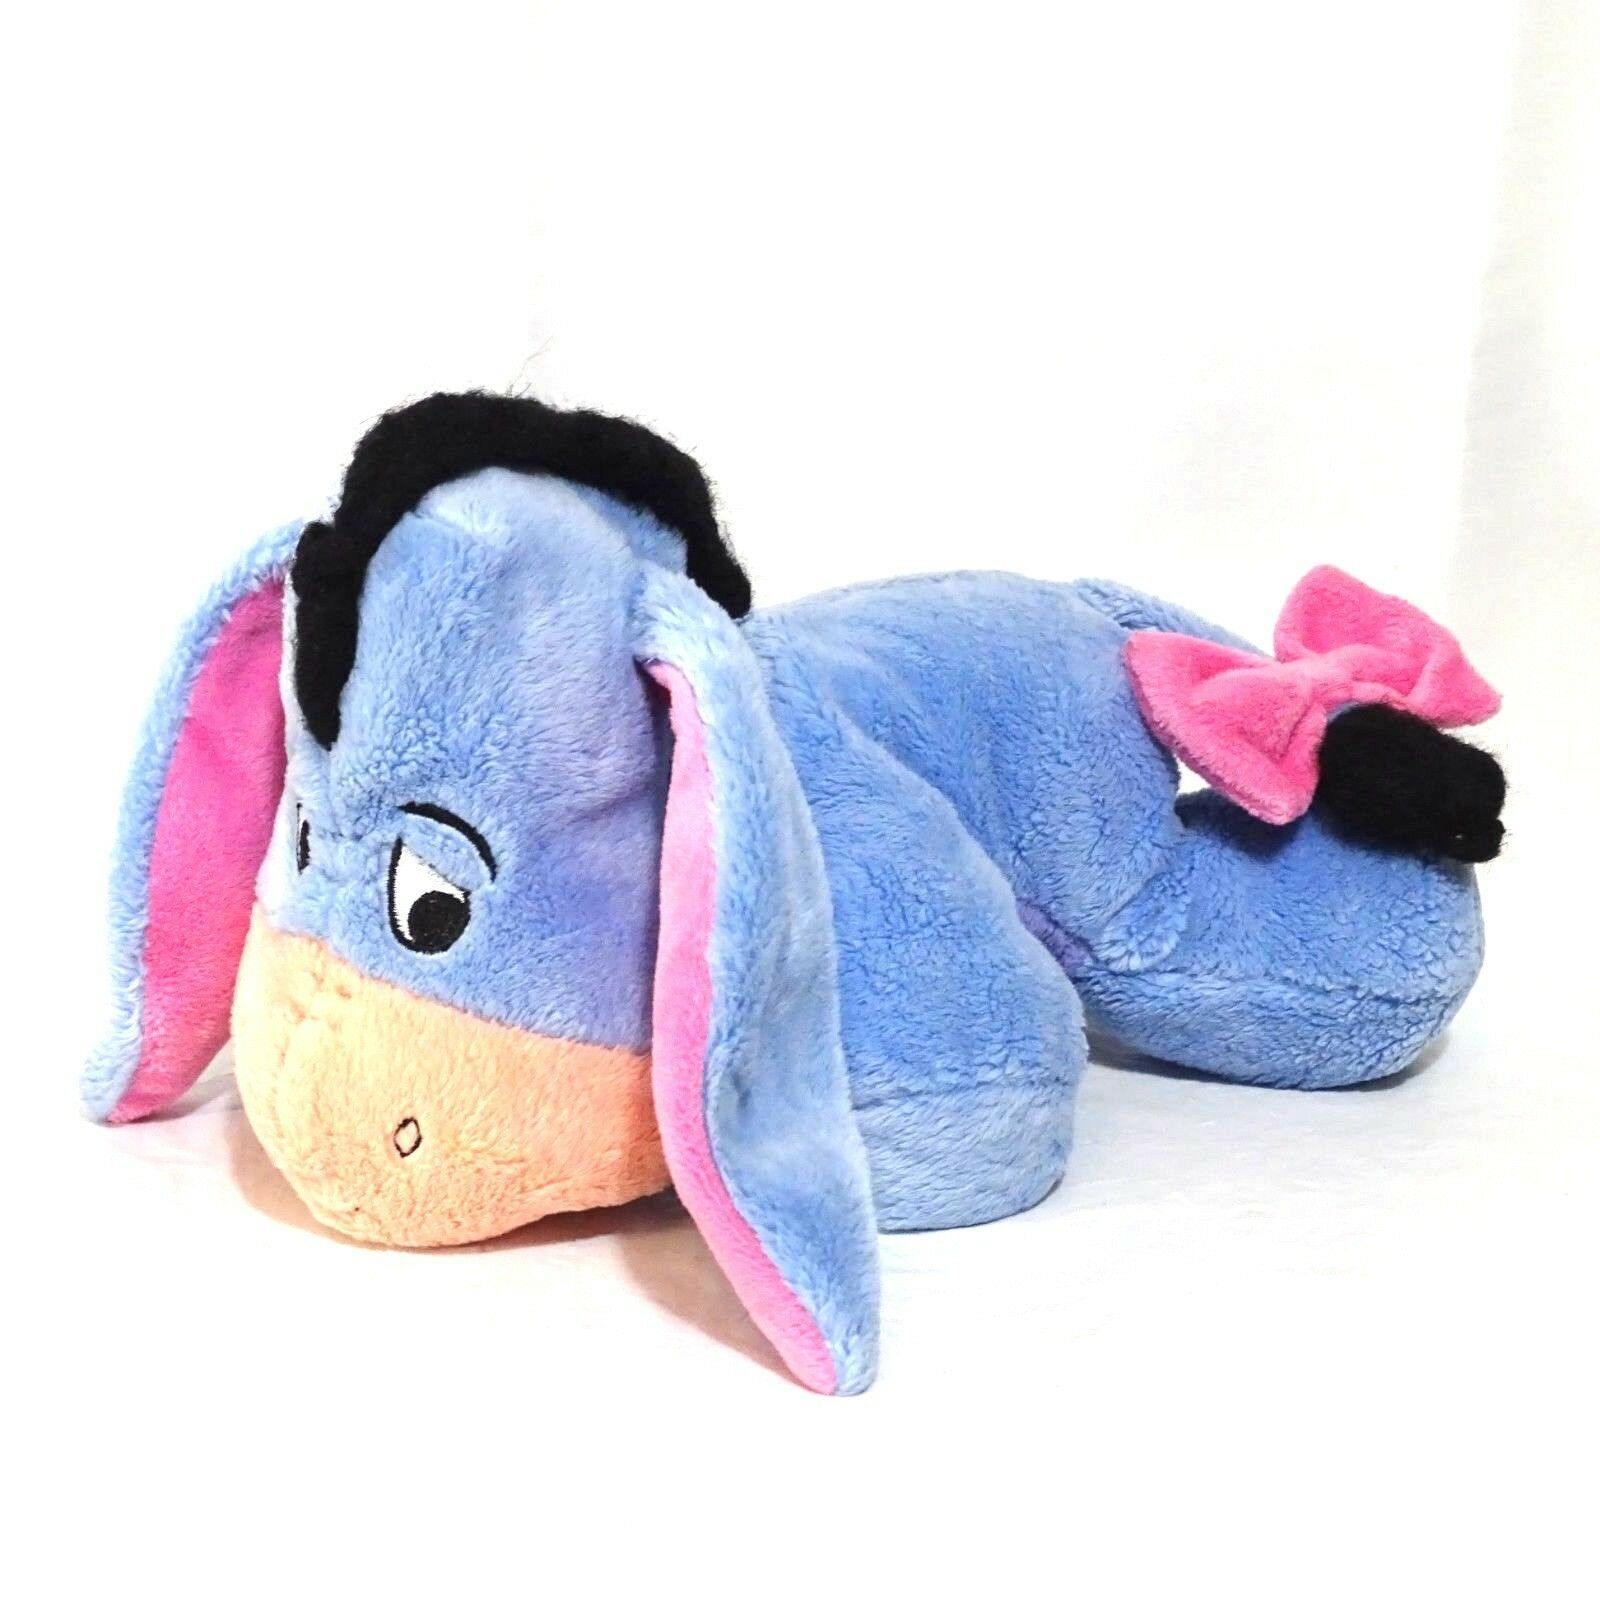 Disney Winnie the Pooh Eeyore Stuffed Plush Toy Blue Pink